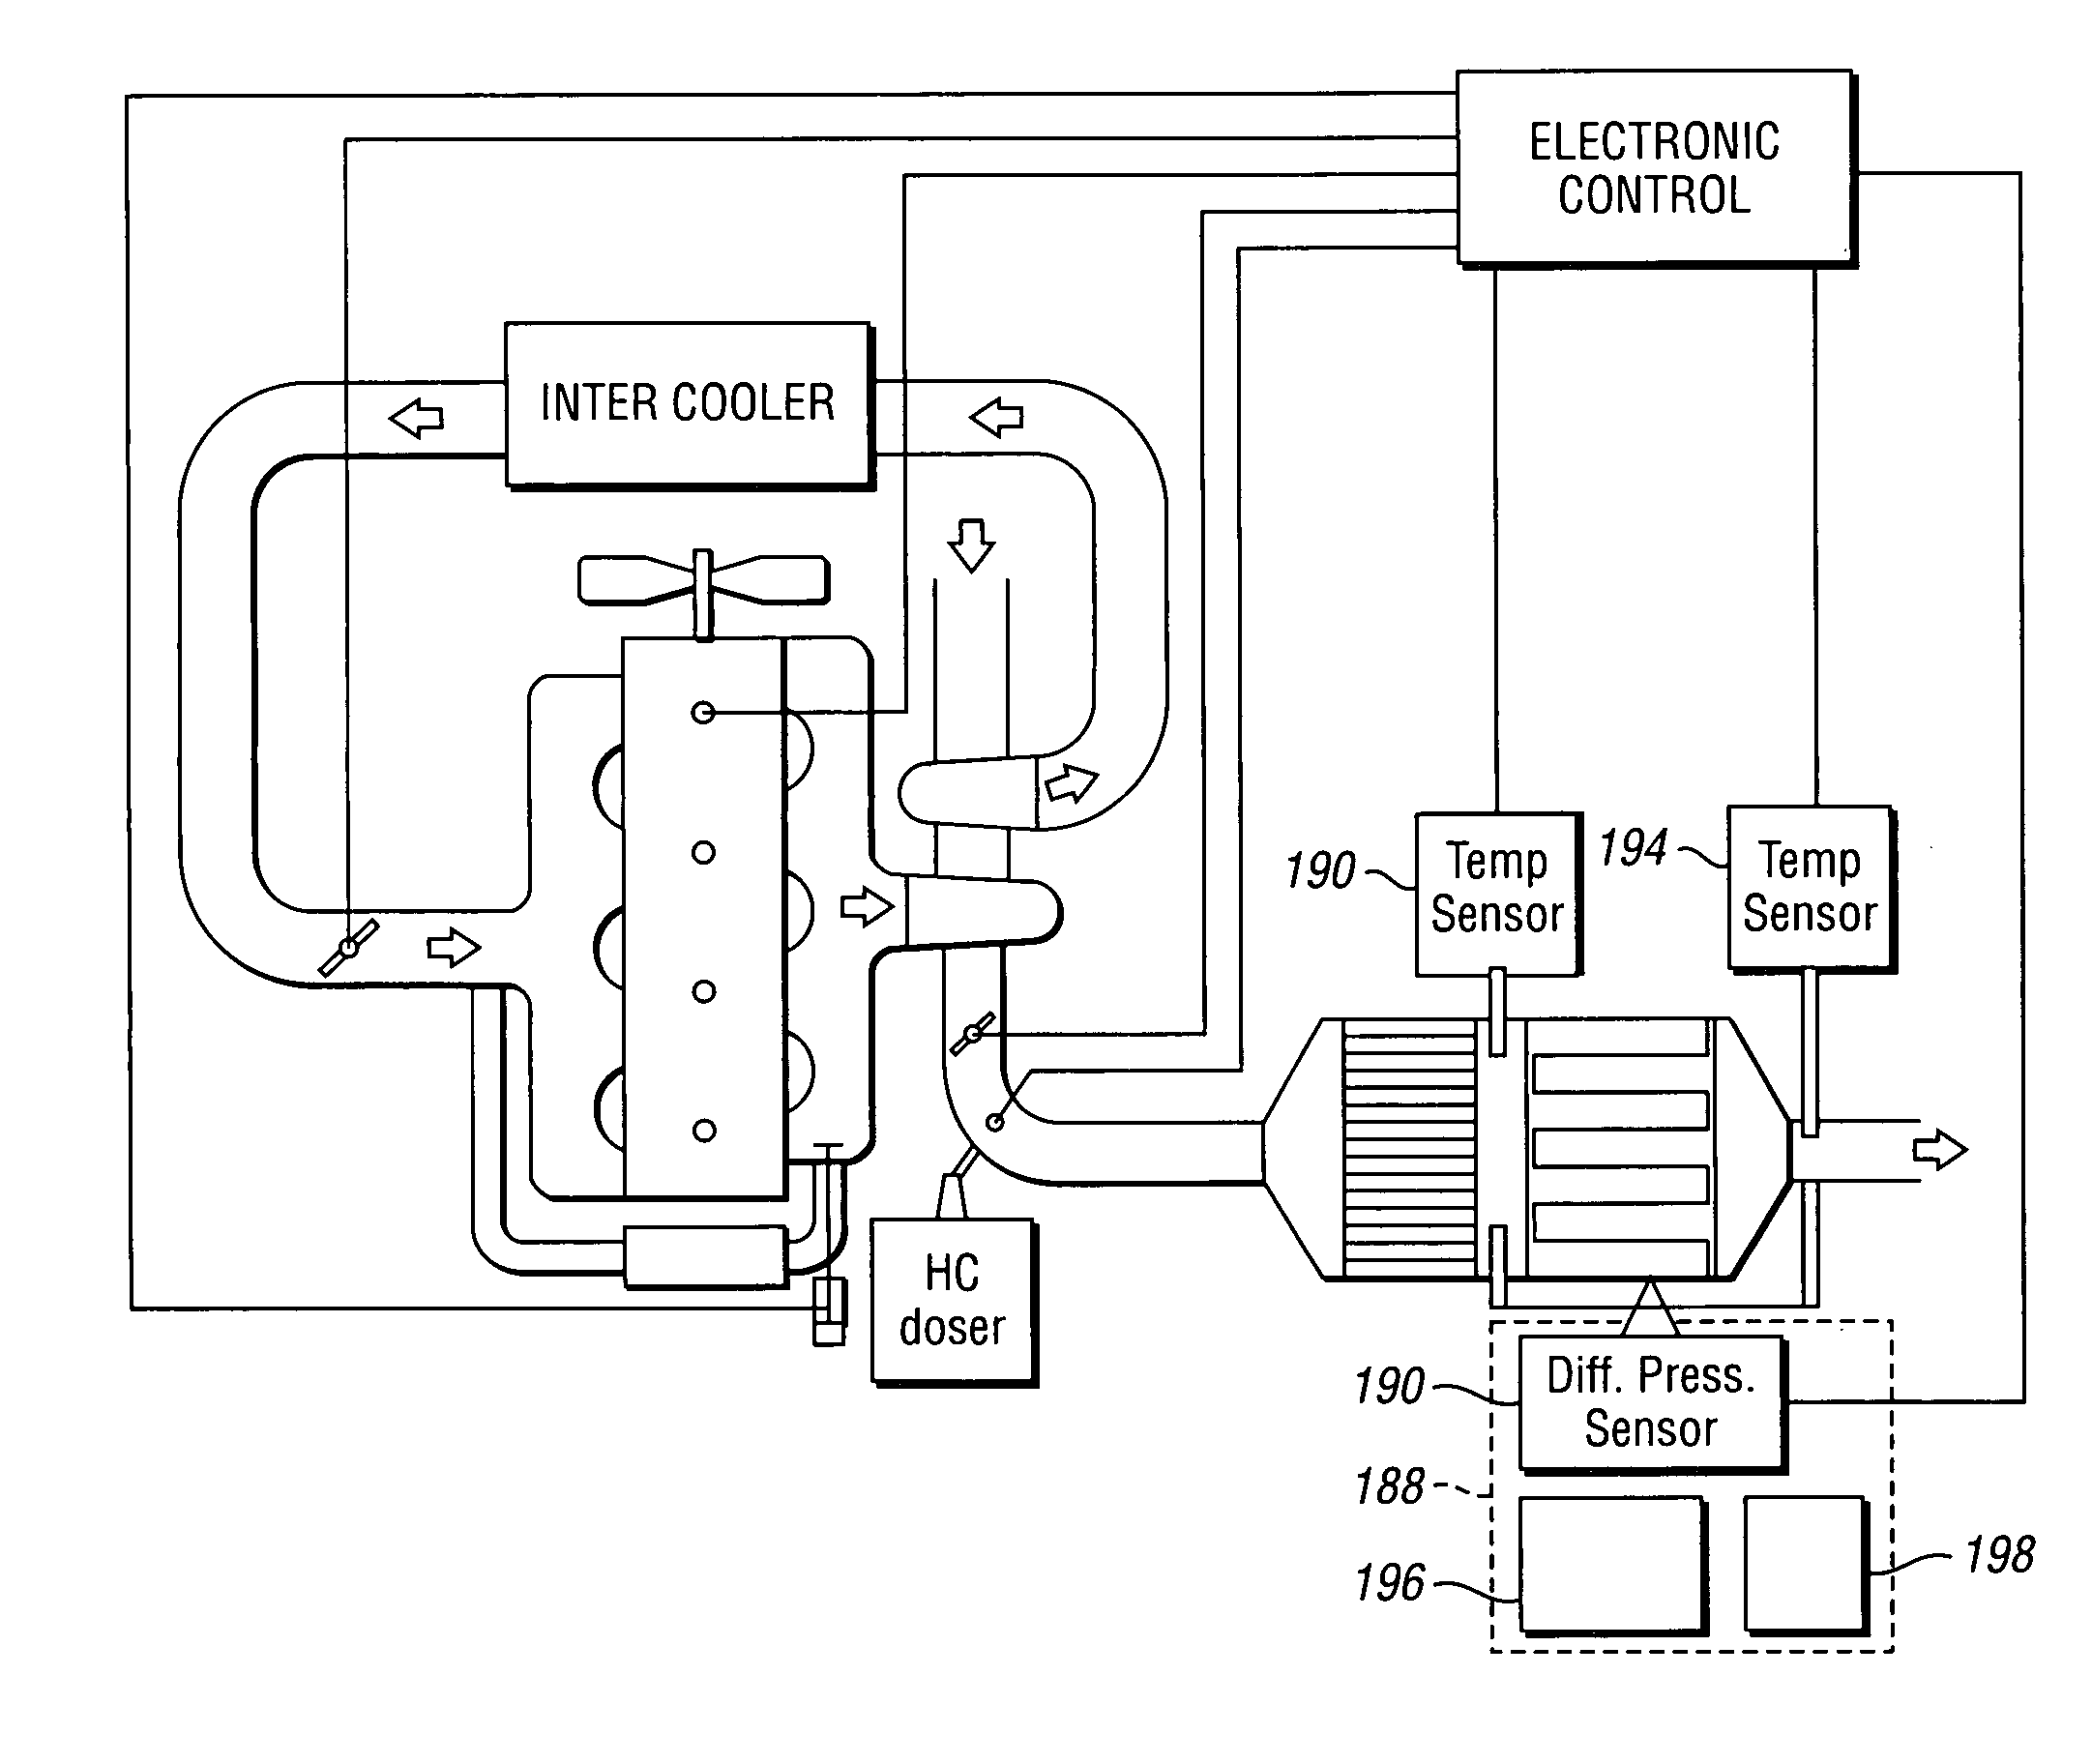 Awesome 3 Wire Pressure Transducer Diagram Electric Fuel Pump How To Do It Wiring Cloud Pendufoxcilixyz